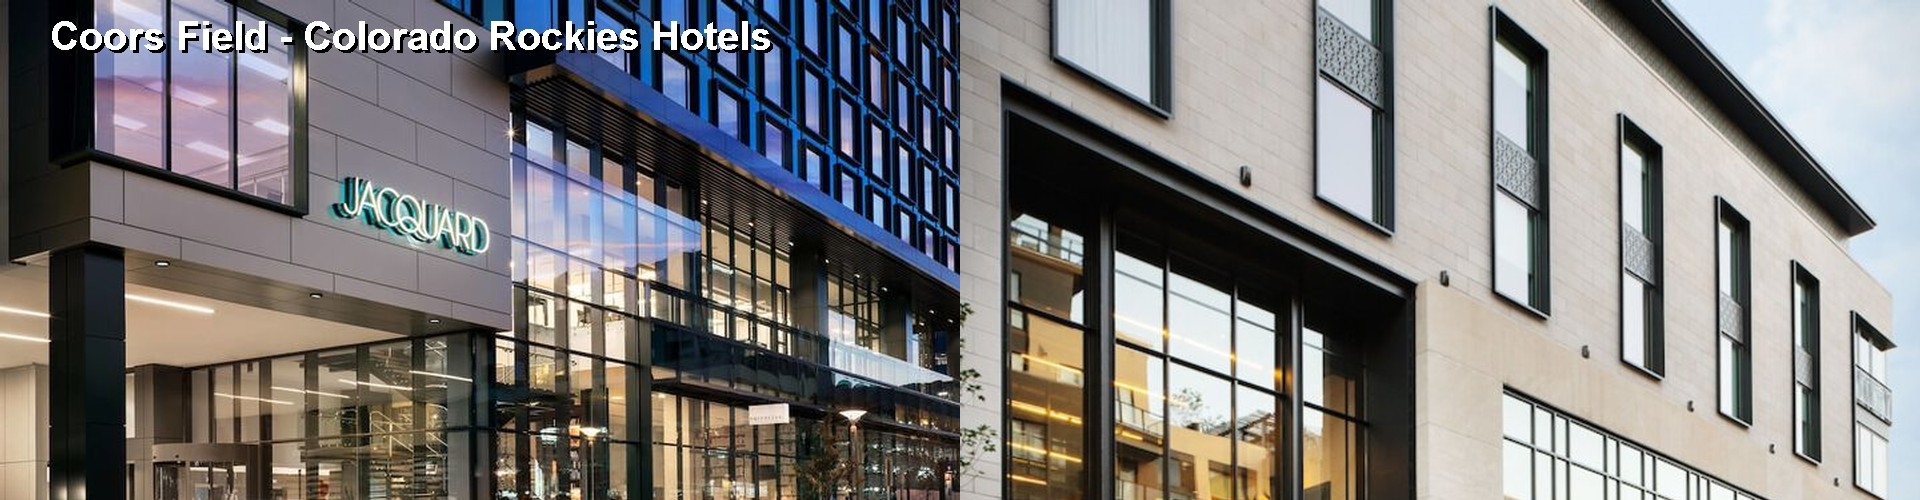 5 Best Hotels near Coors Field - Colorado Rockies